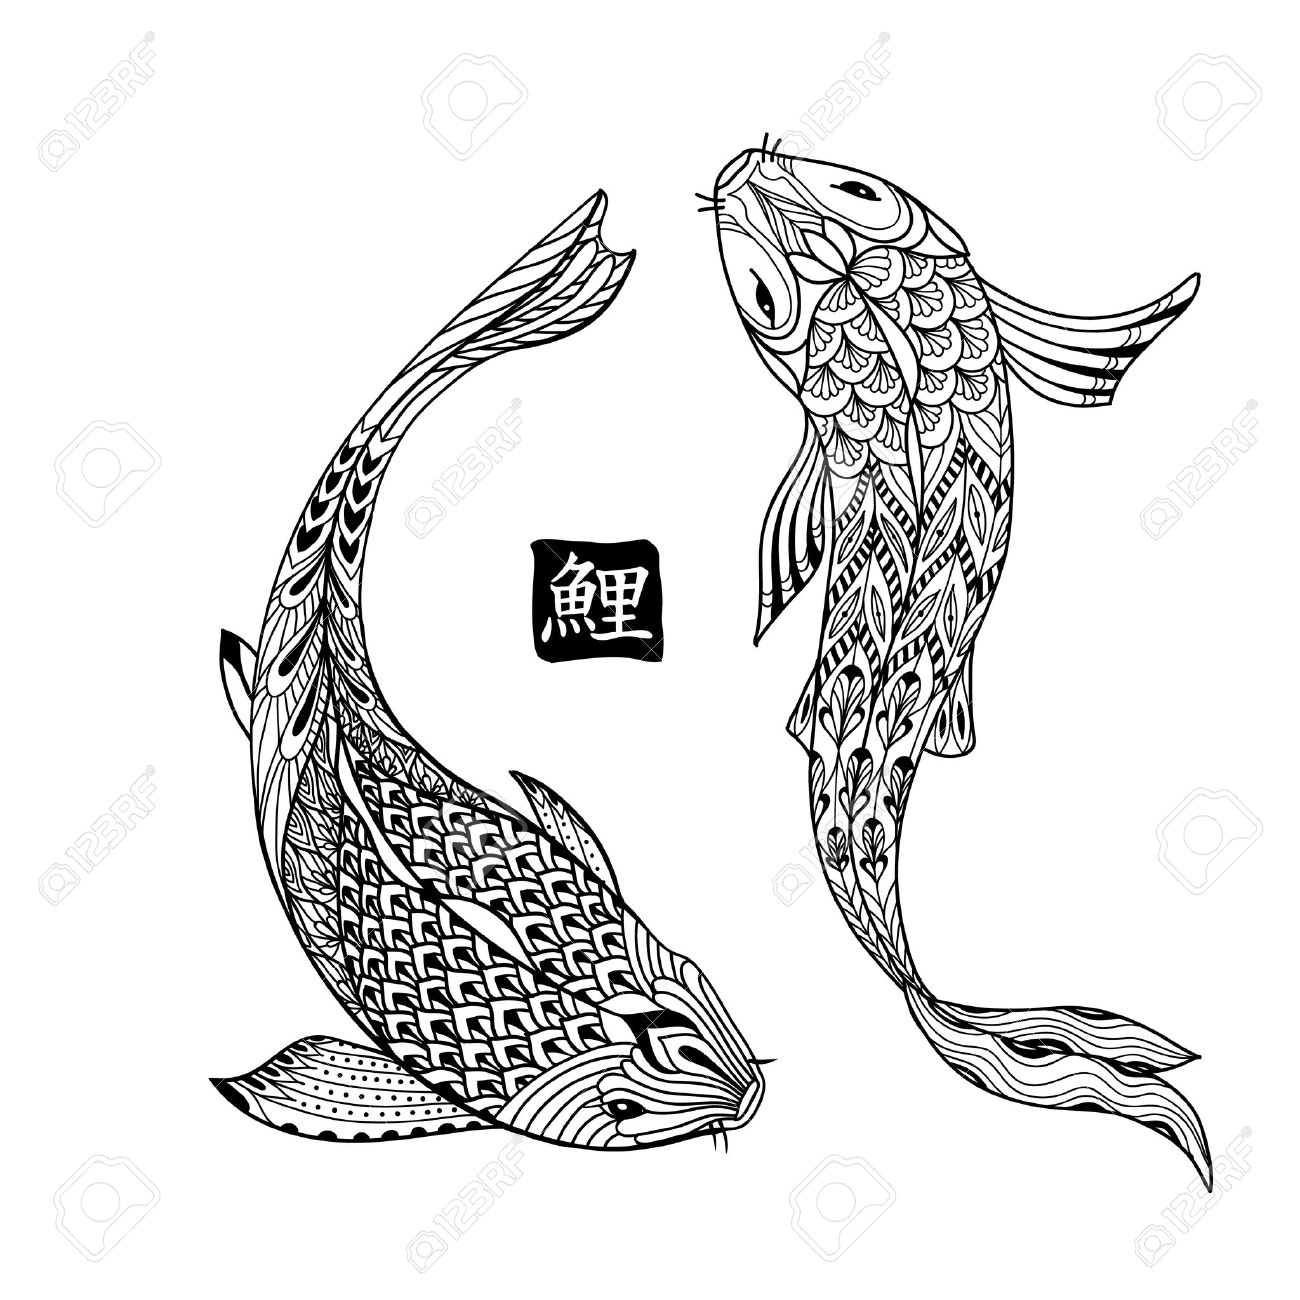 1300x1300 Hand Drawn Koi Fish. Japanese Carp Line Drawing For Coloring